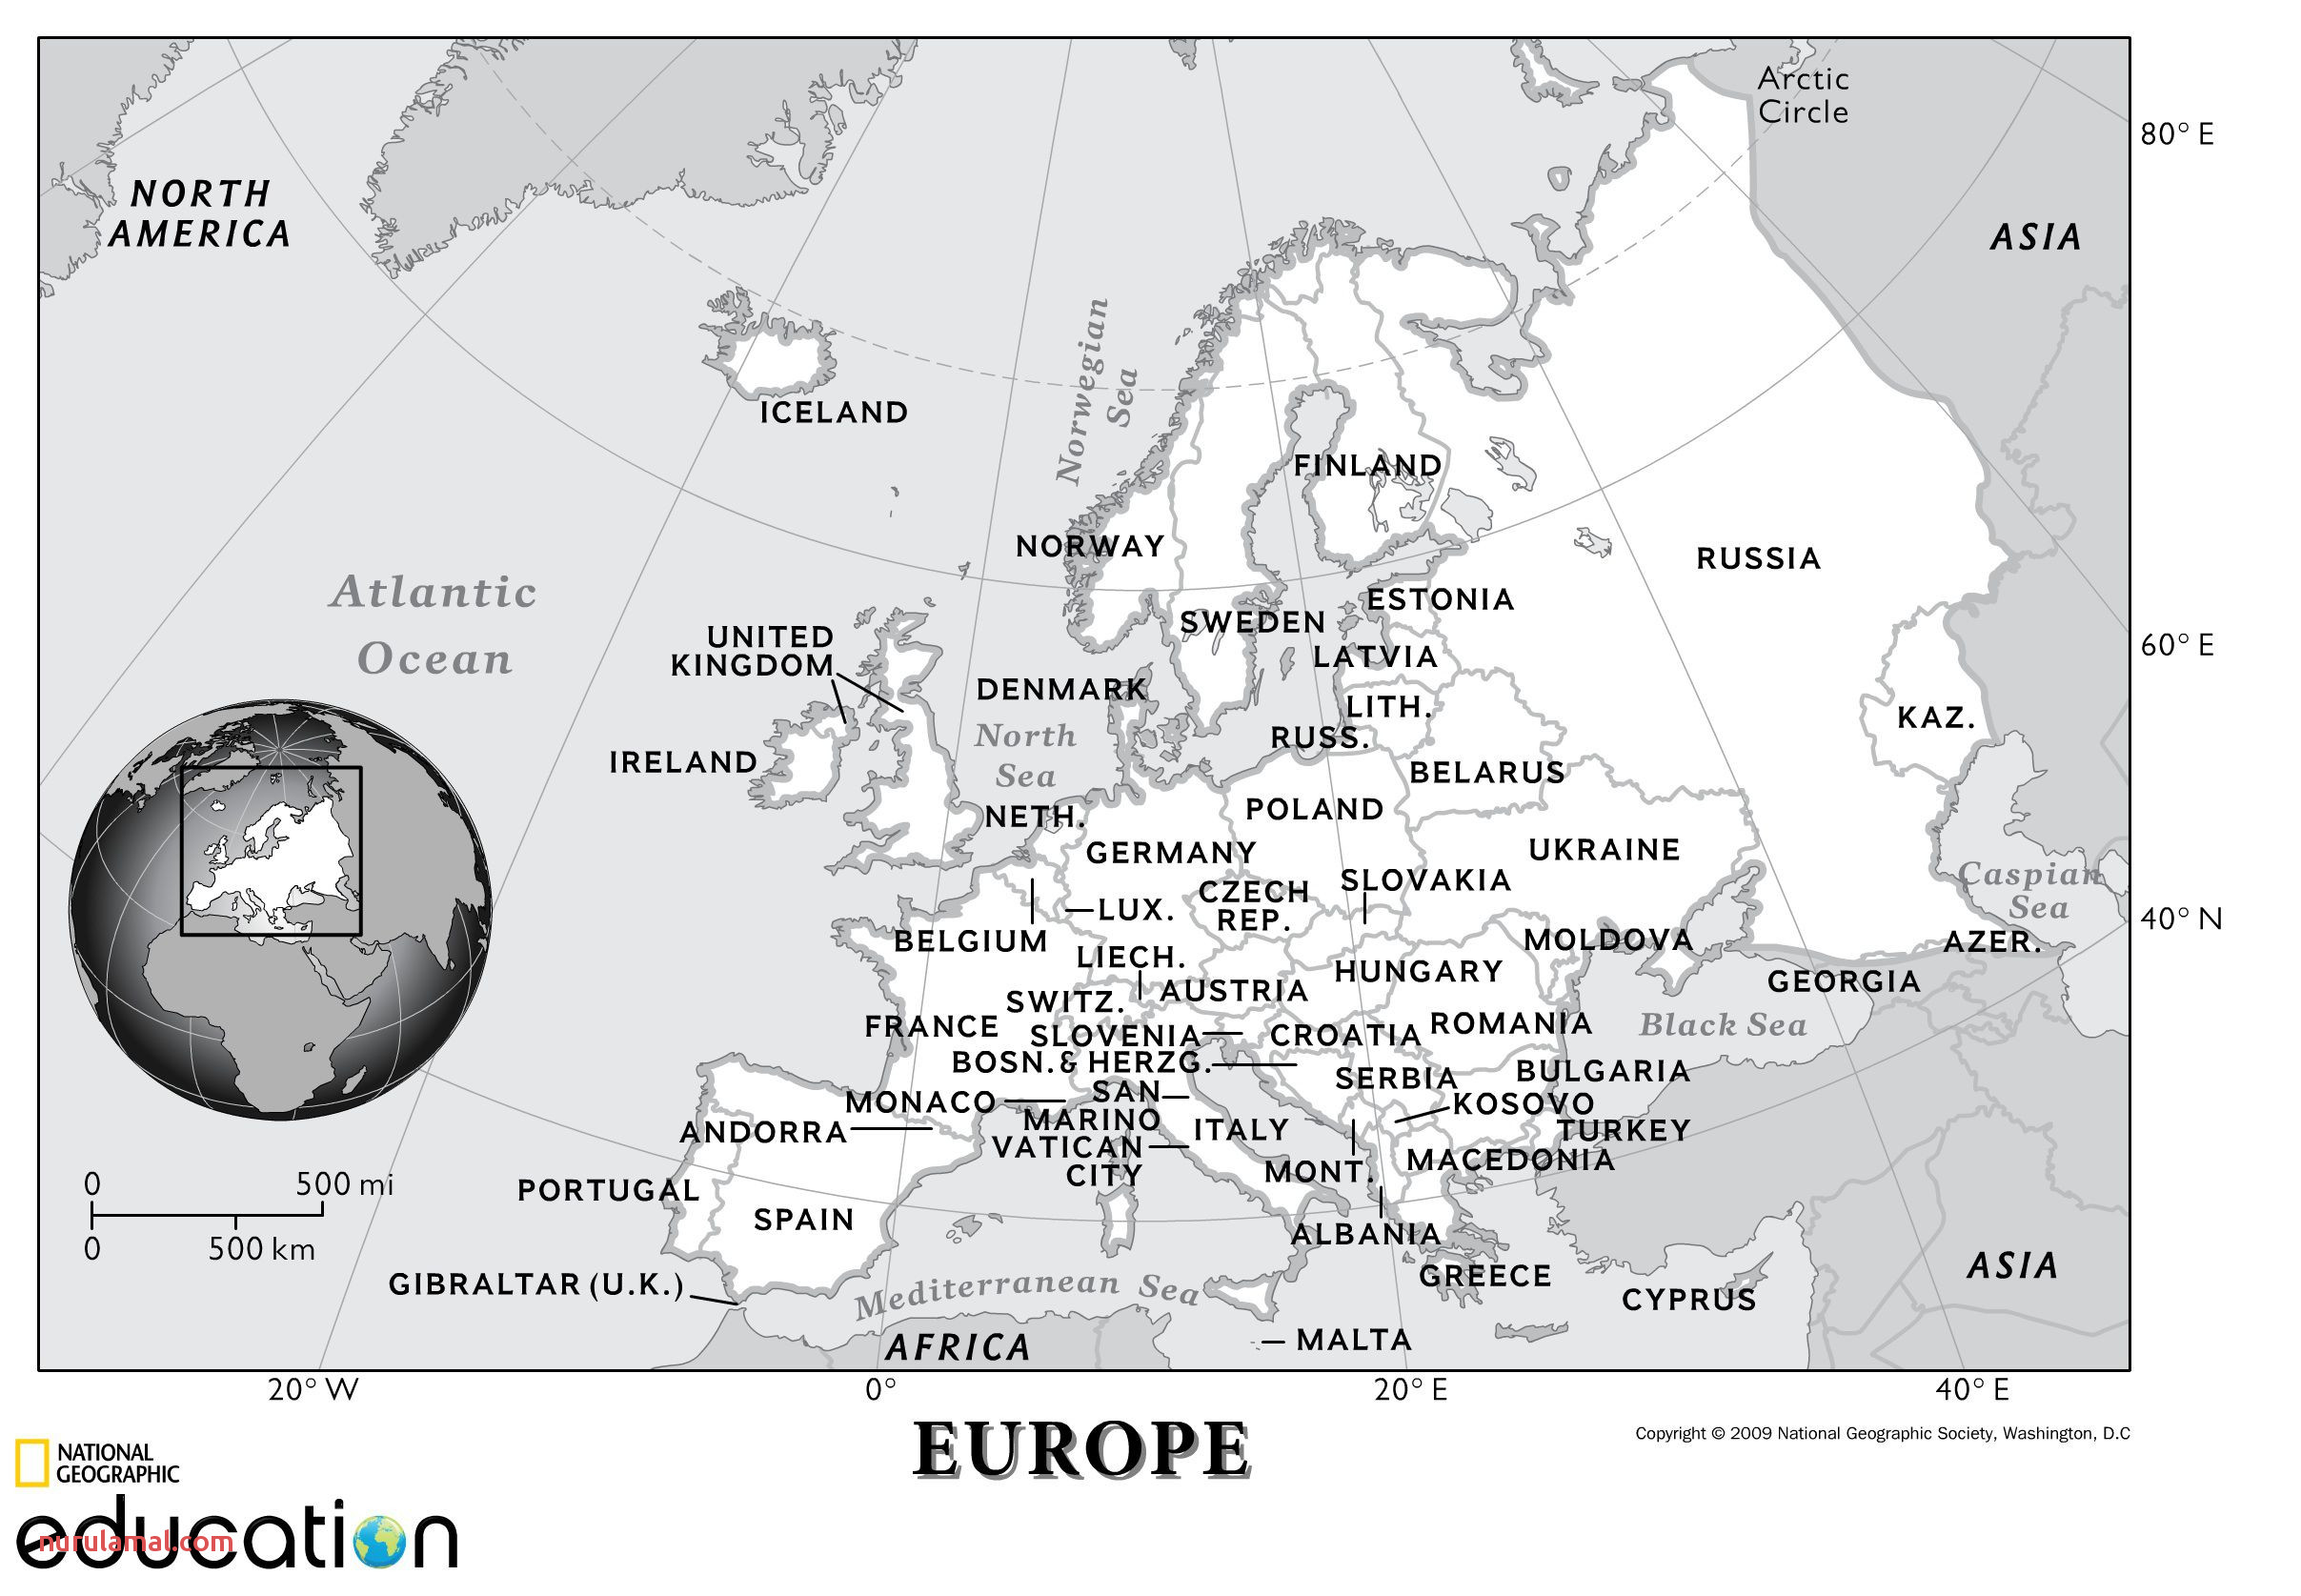 Europe Human Geography